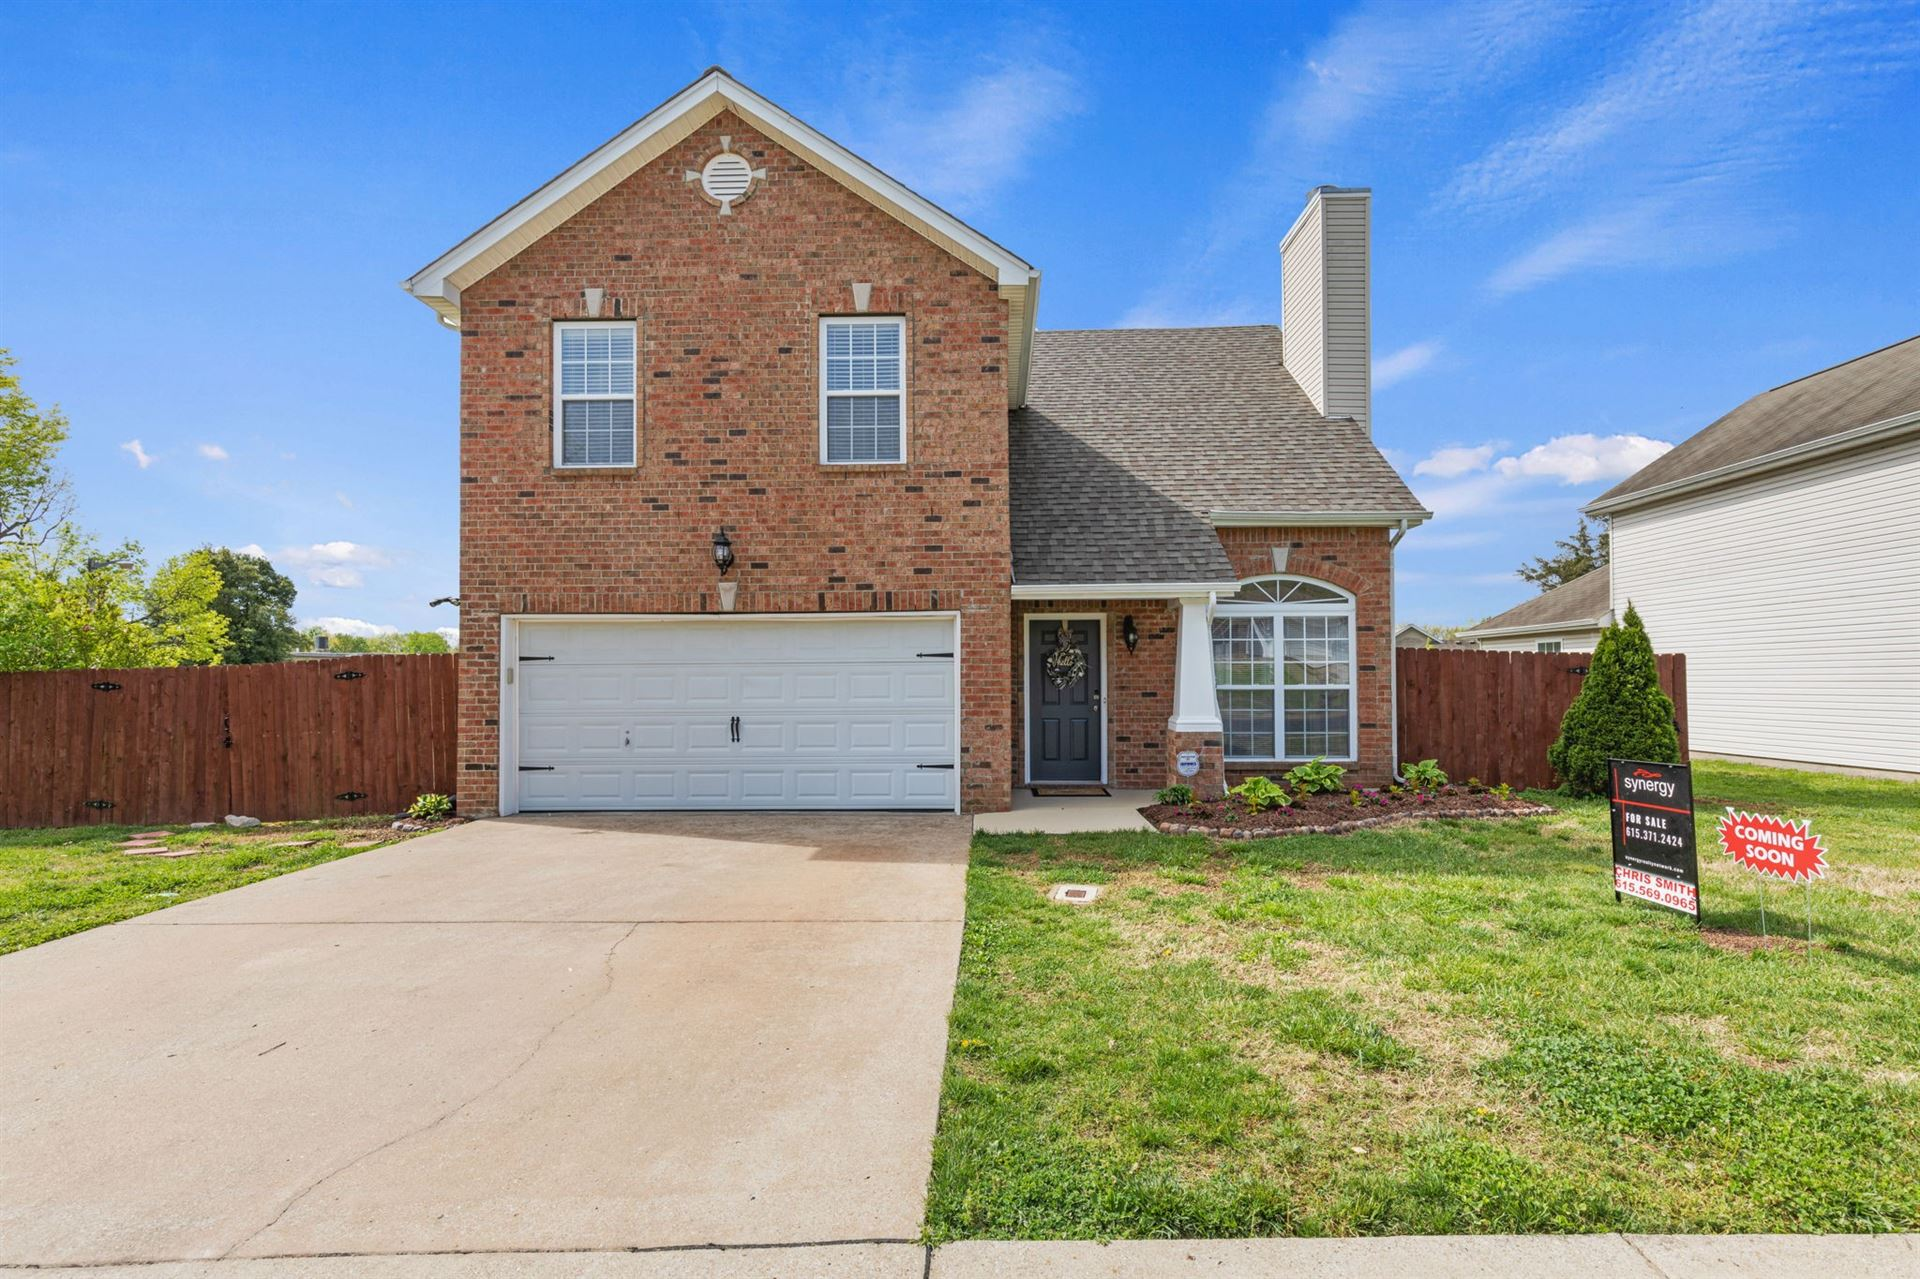 Photo of 315 Cherry Dr, Franklin, TN 37064 (MLS # 2244158)